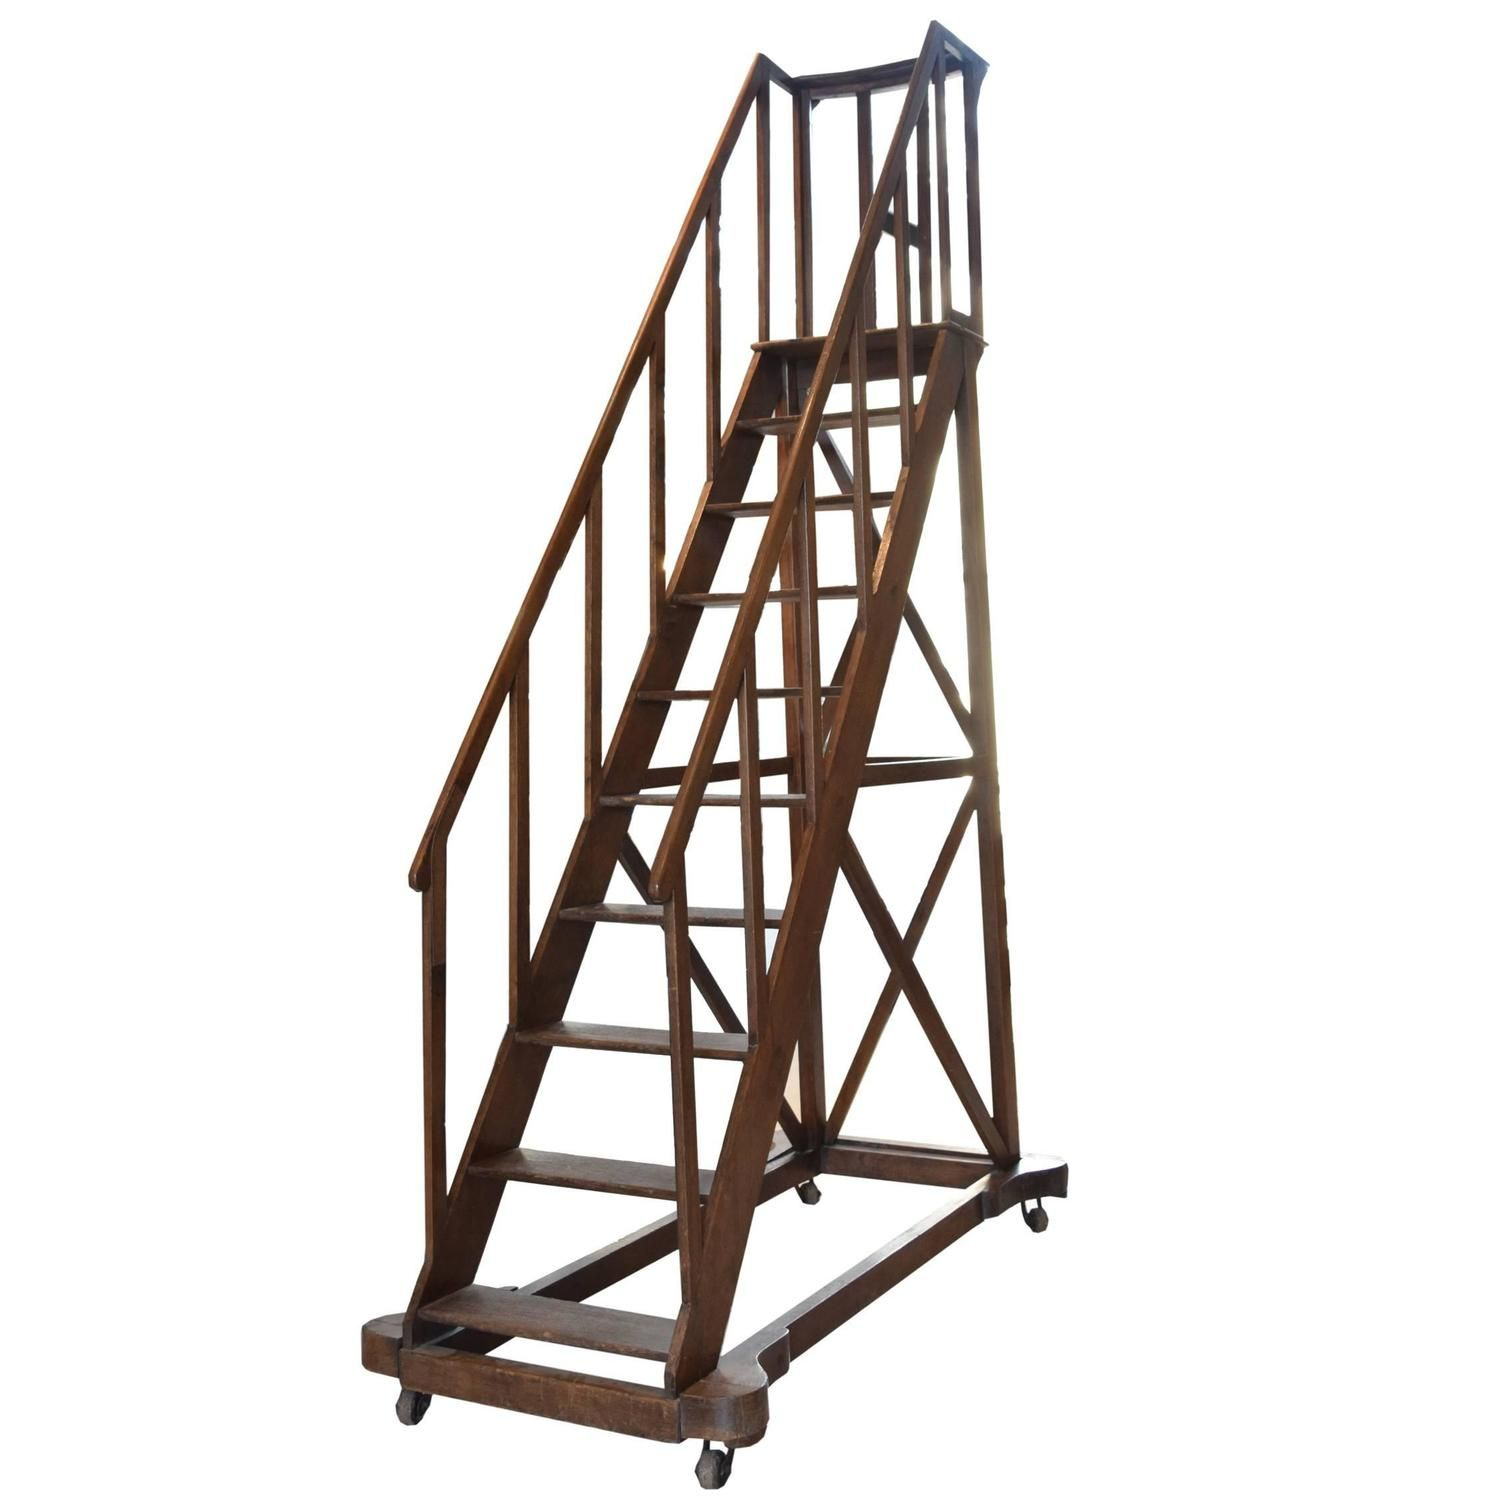 19th Century Library Ladder From A Unique Collection Of Antique And Modern Ladders At Https Www 1stdibs Com Furniture M Library Ladder Ladder Wooden Ladder